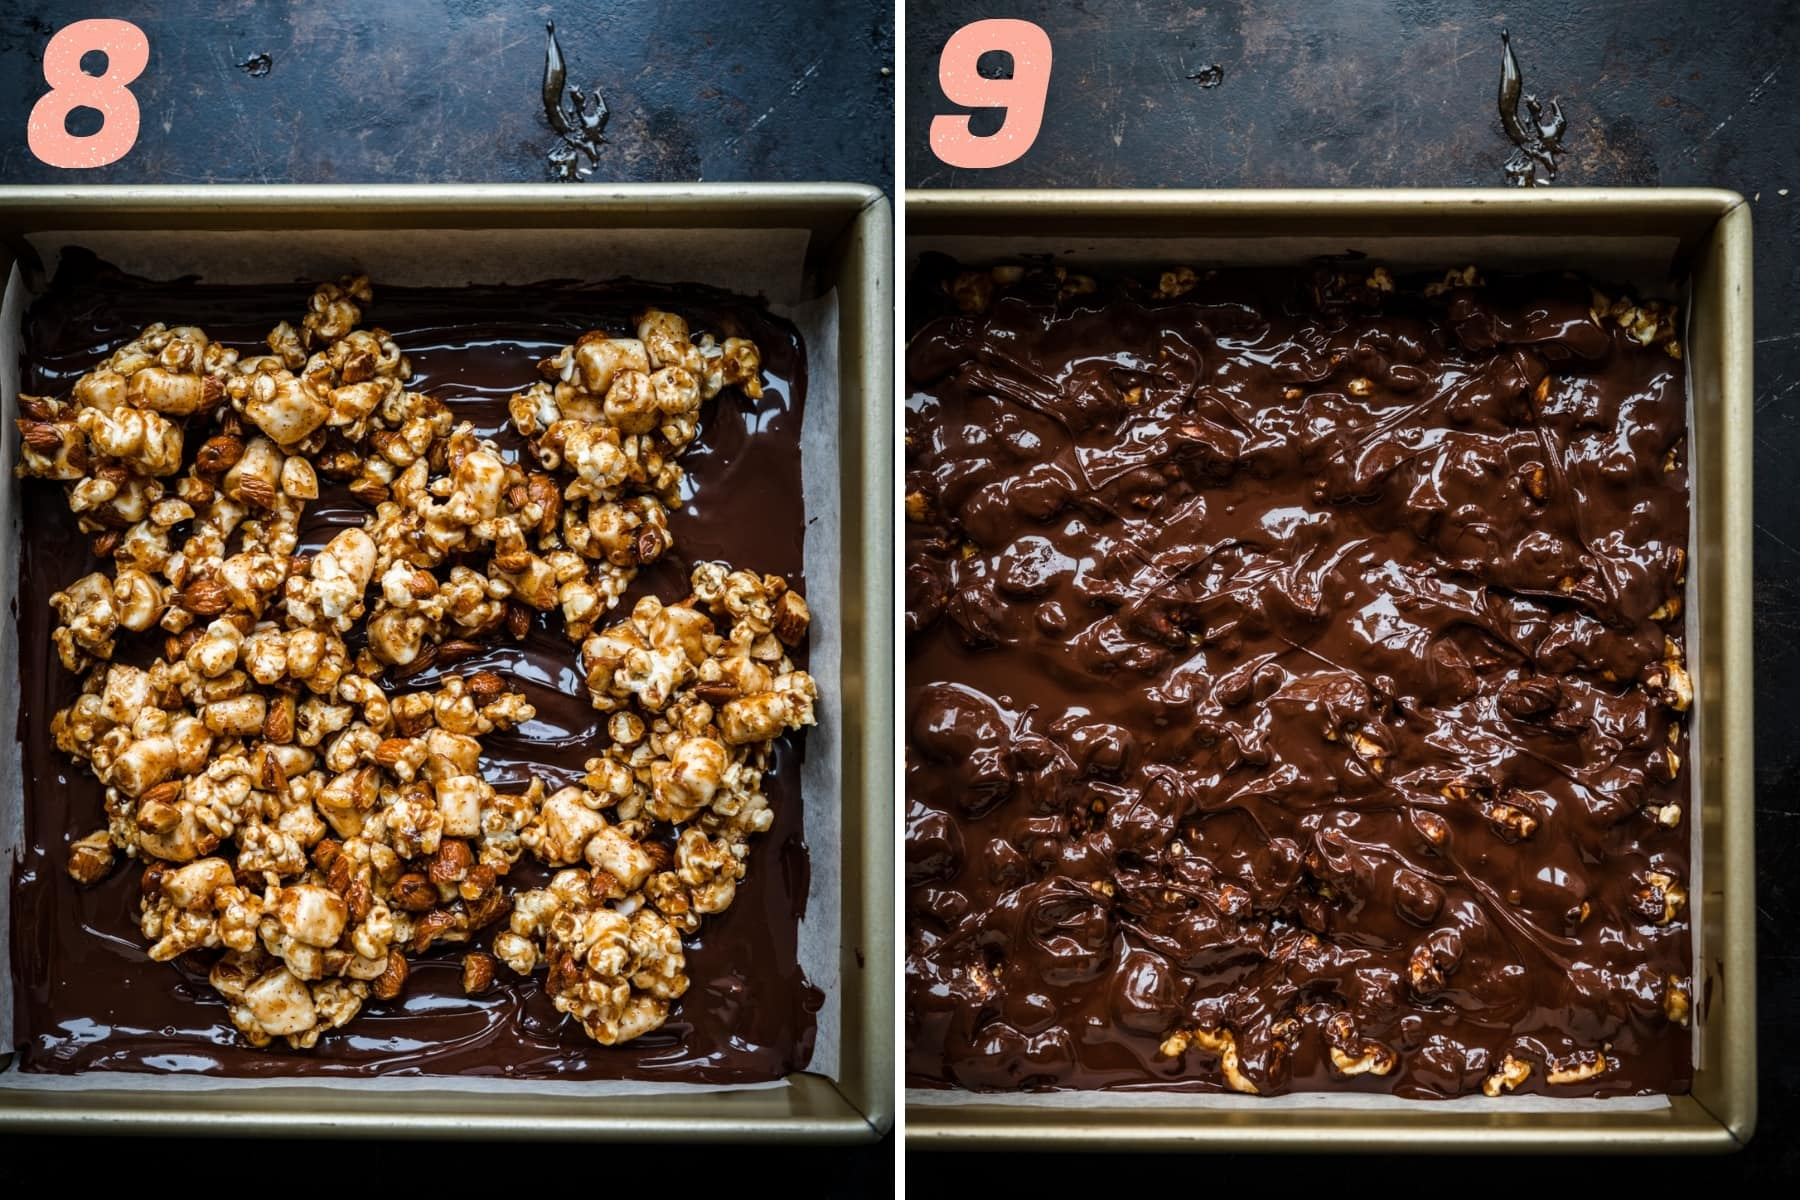 layering in popcorn nut caramel mixture with dark chocolate to form bars.